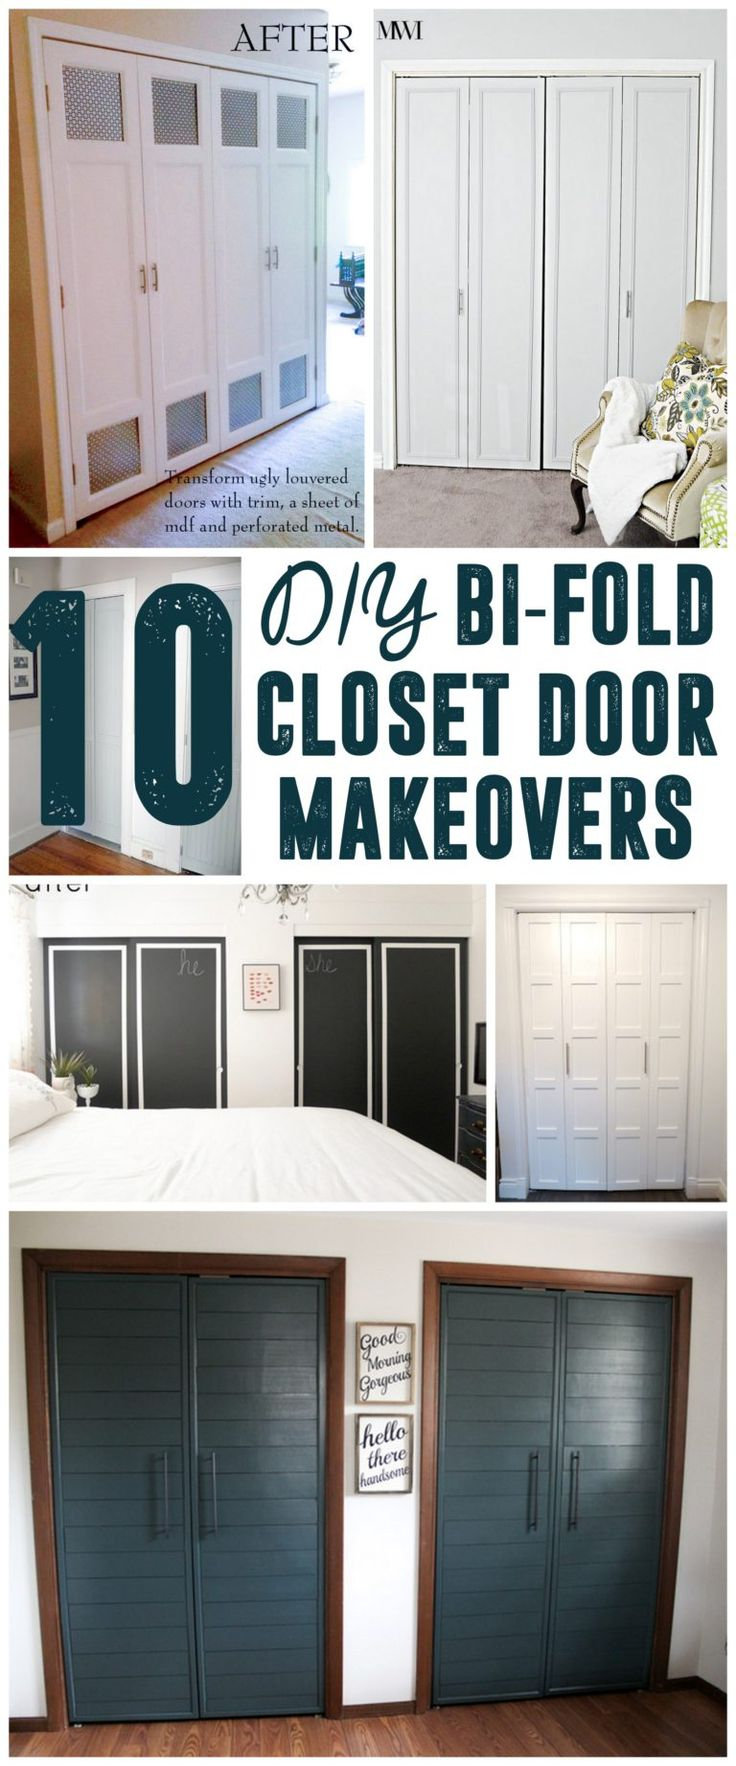 Makeover Ideas Before And Hy After Diy Bi Fold Closet